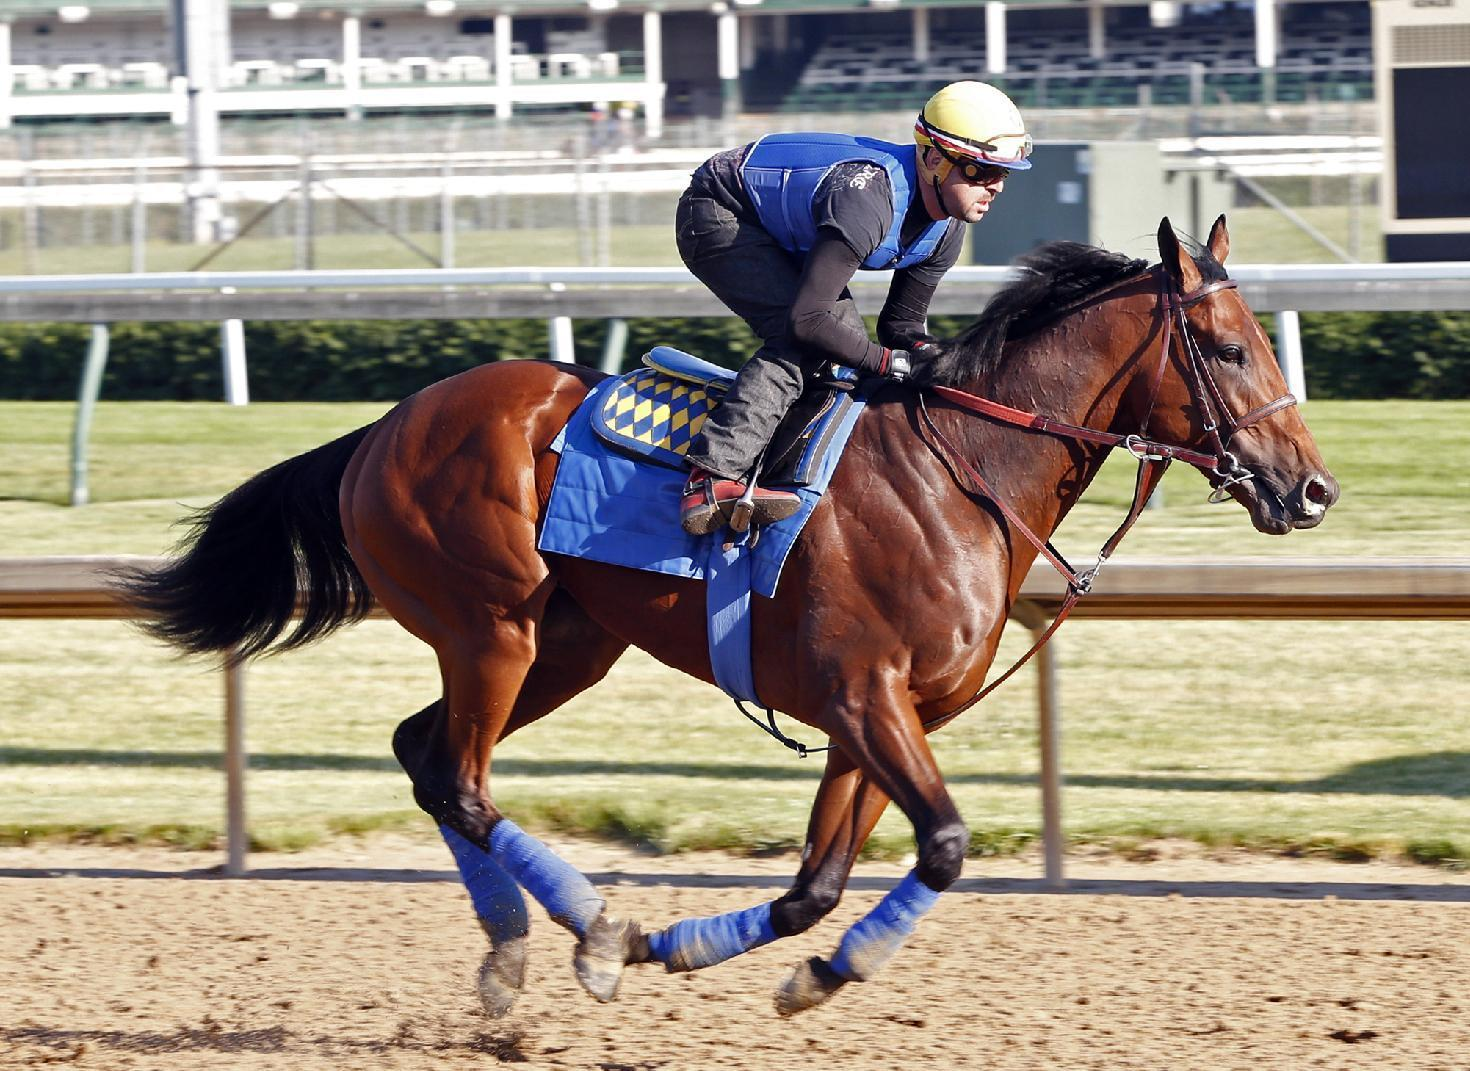 American Pharoah gallops in Kentucky, others work at Belmont